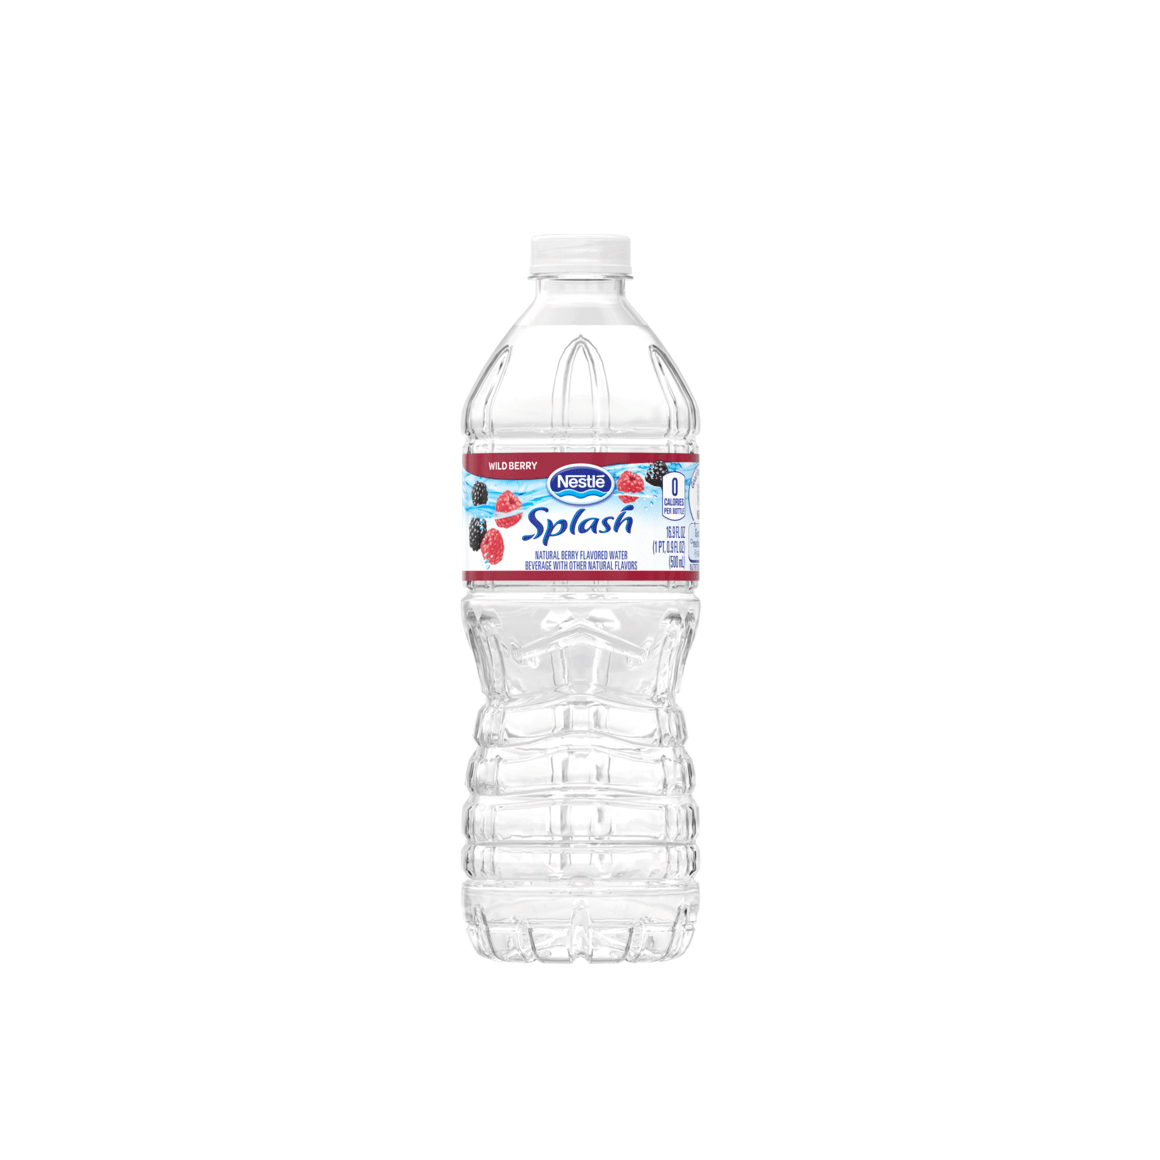 Nestlé® Splash Natural Wild Berry Flavored Water Image2